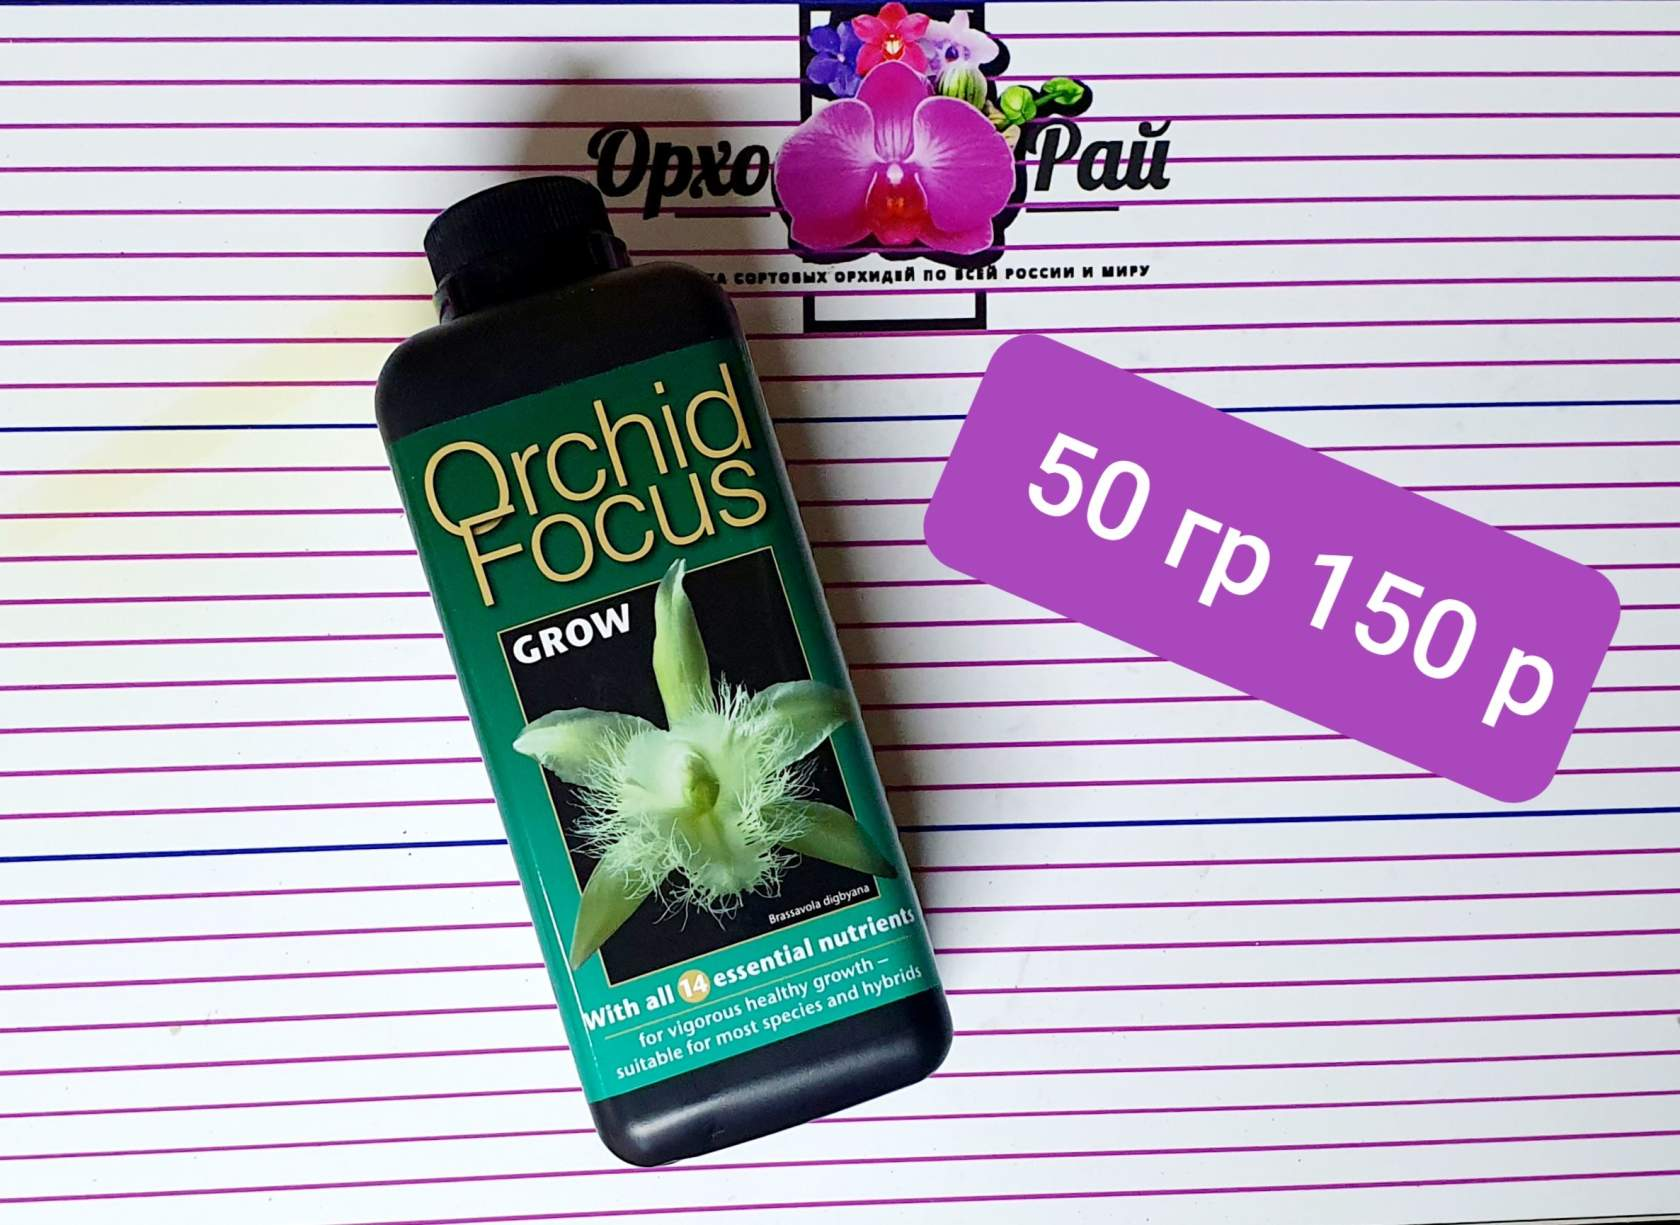 Orchid Focus Grow